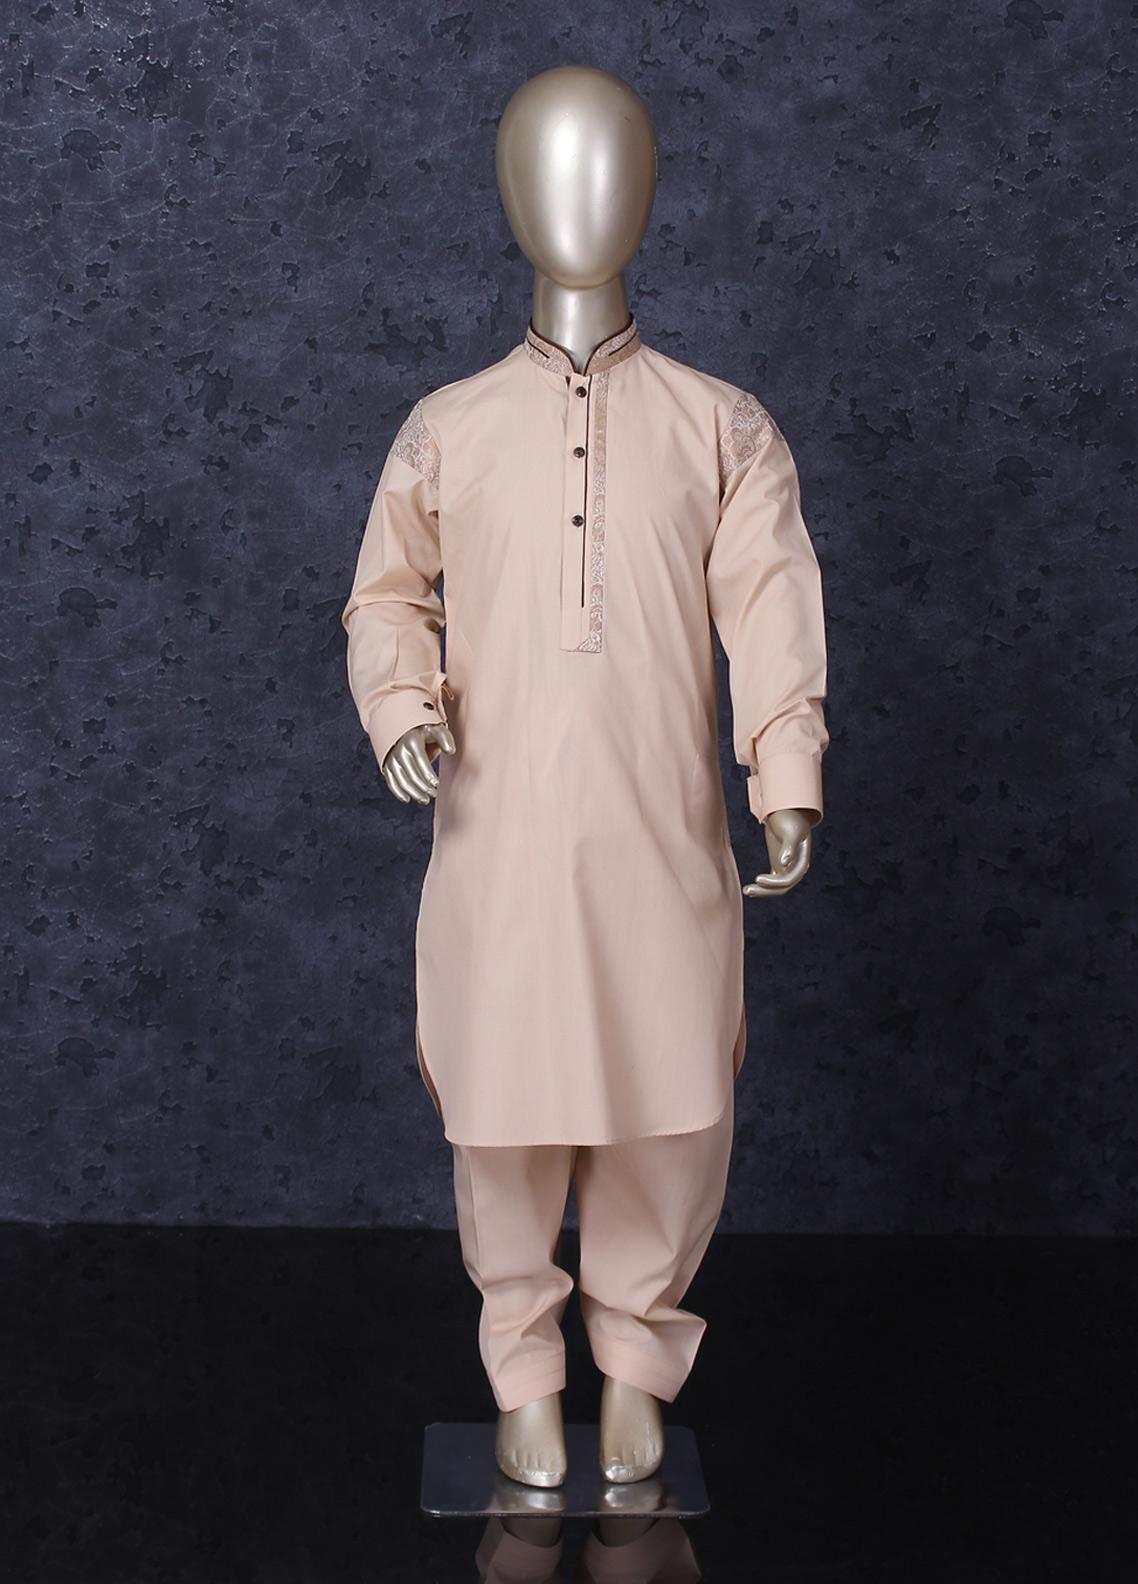 Aizaz Zafar Cotton Formal Boys Kameez Shalwar -  251 Beige